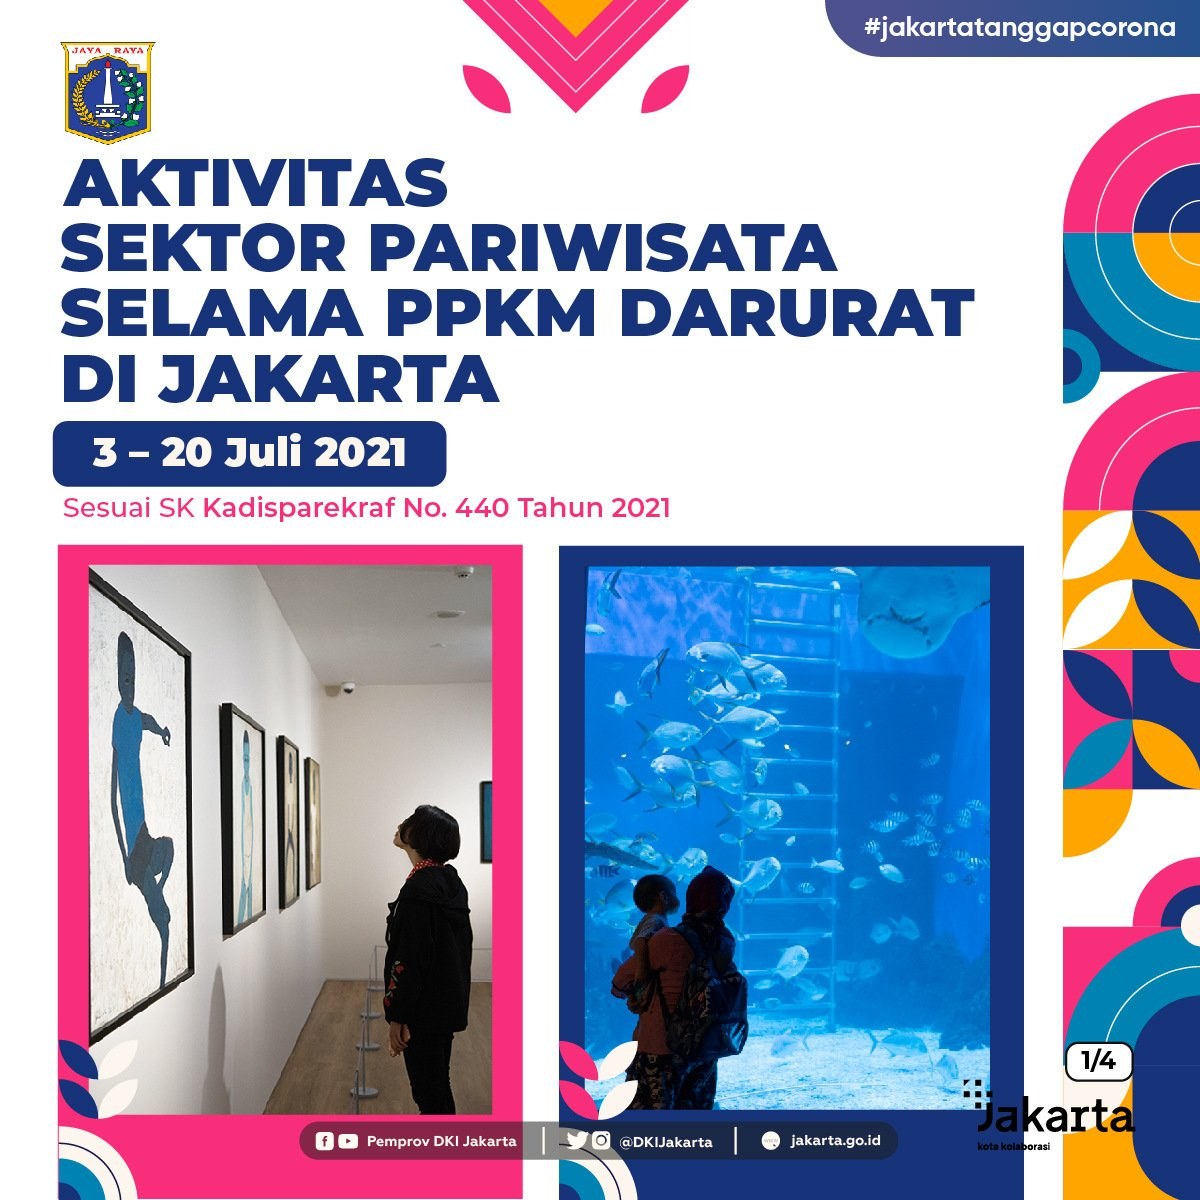 Tourism Sector Activities During Emergency PPKM in Jakarta